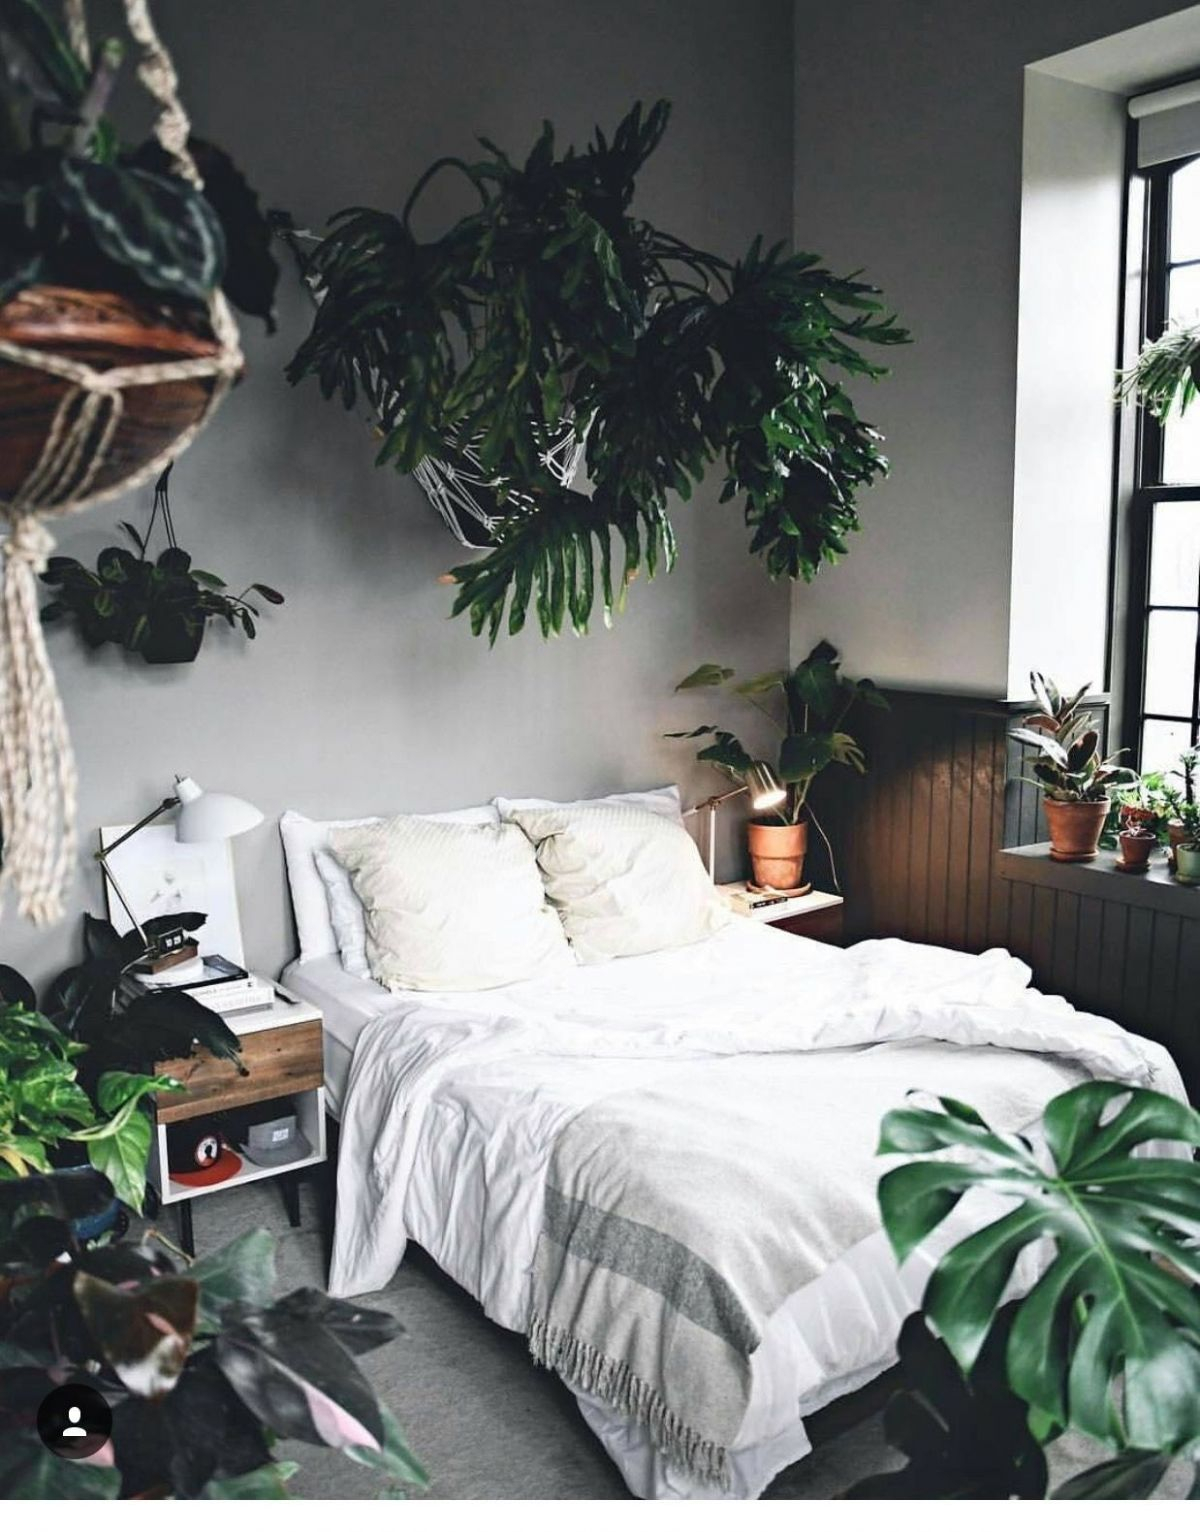 Lovely Bedroom Plant Ideas Plants In The Room Interior And ..